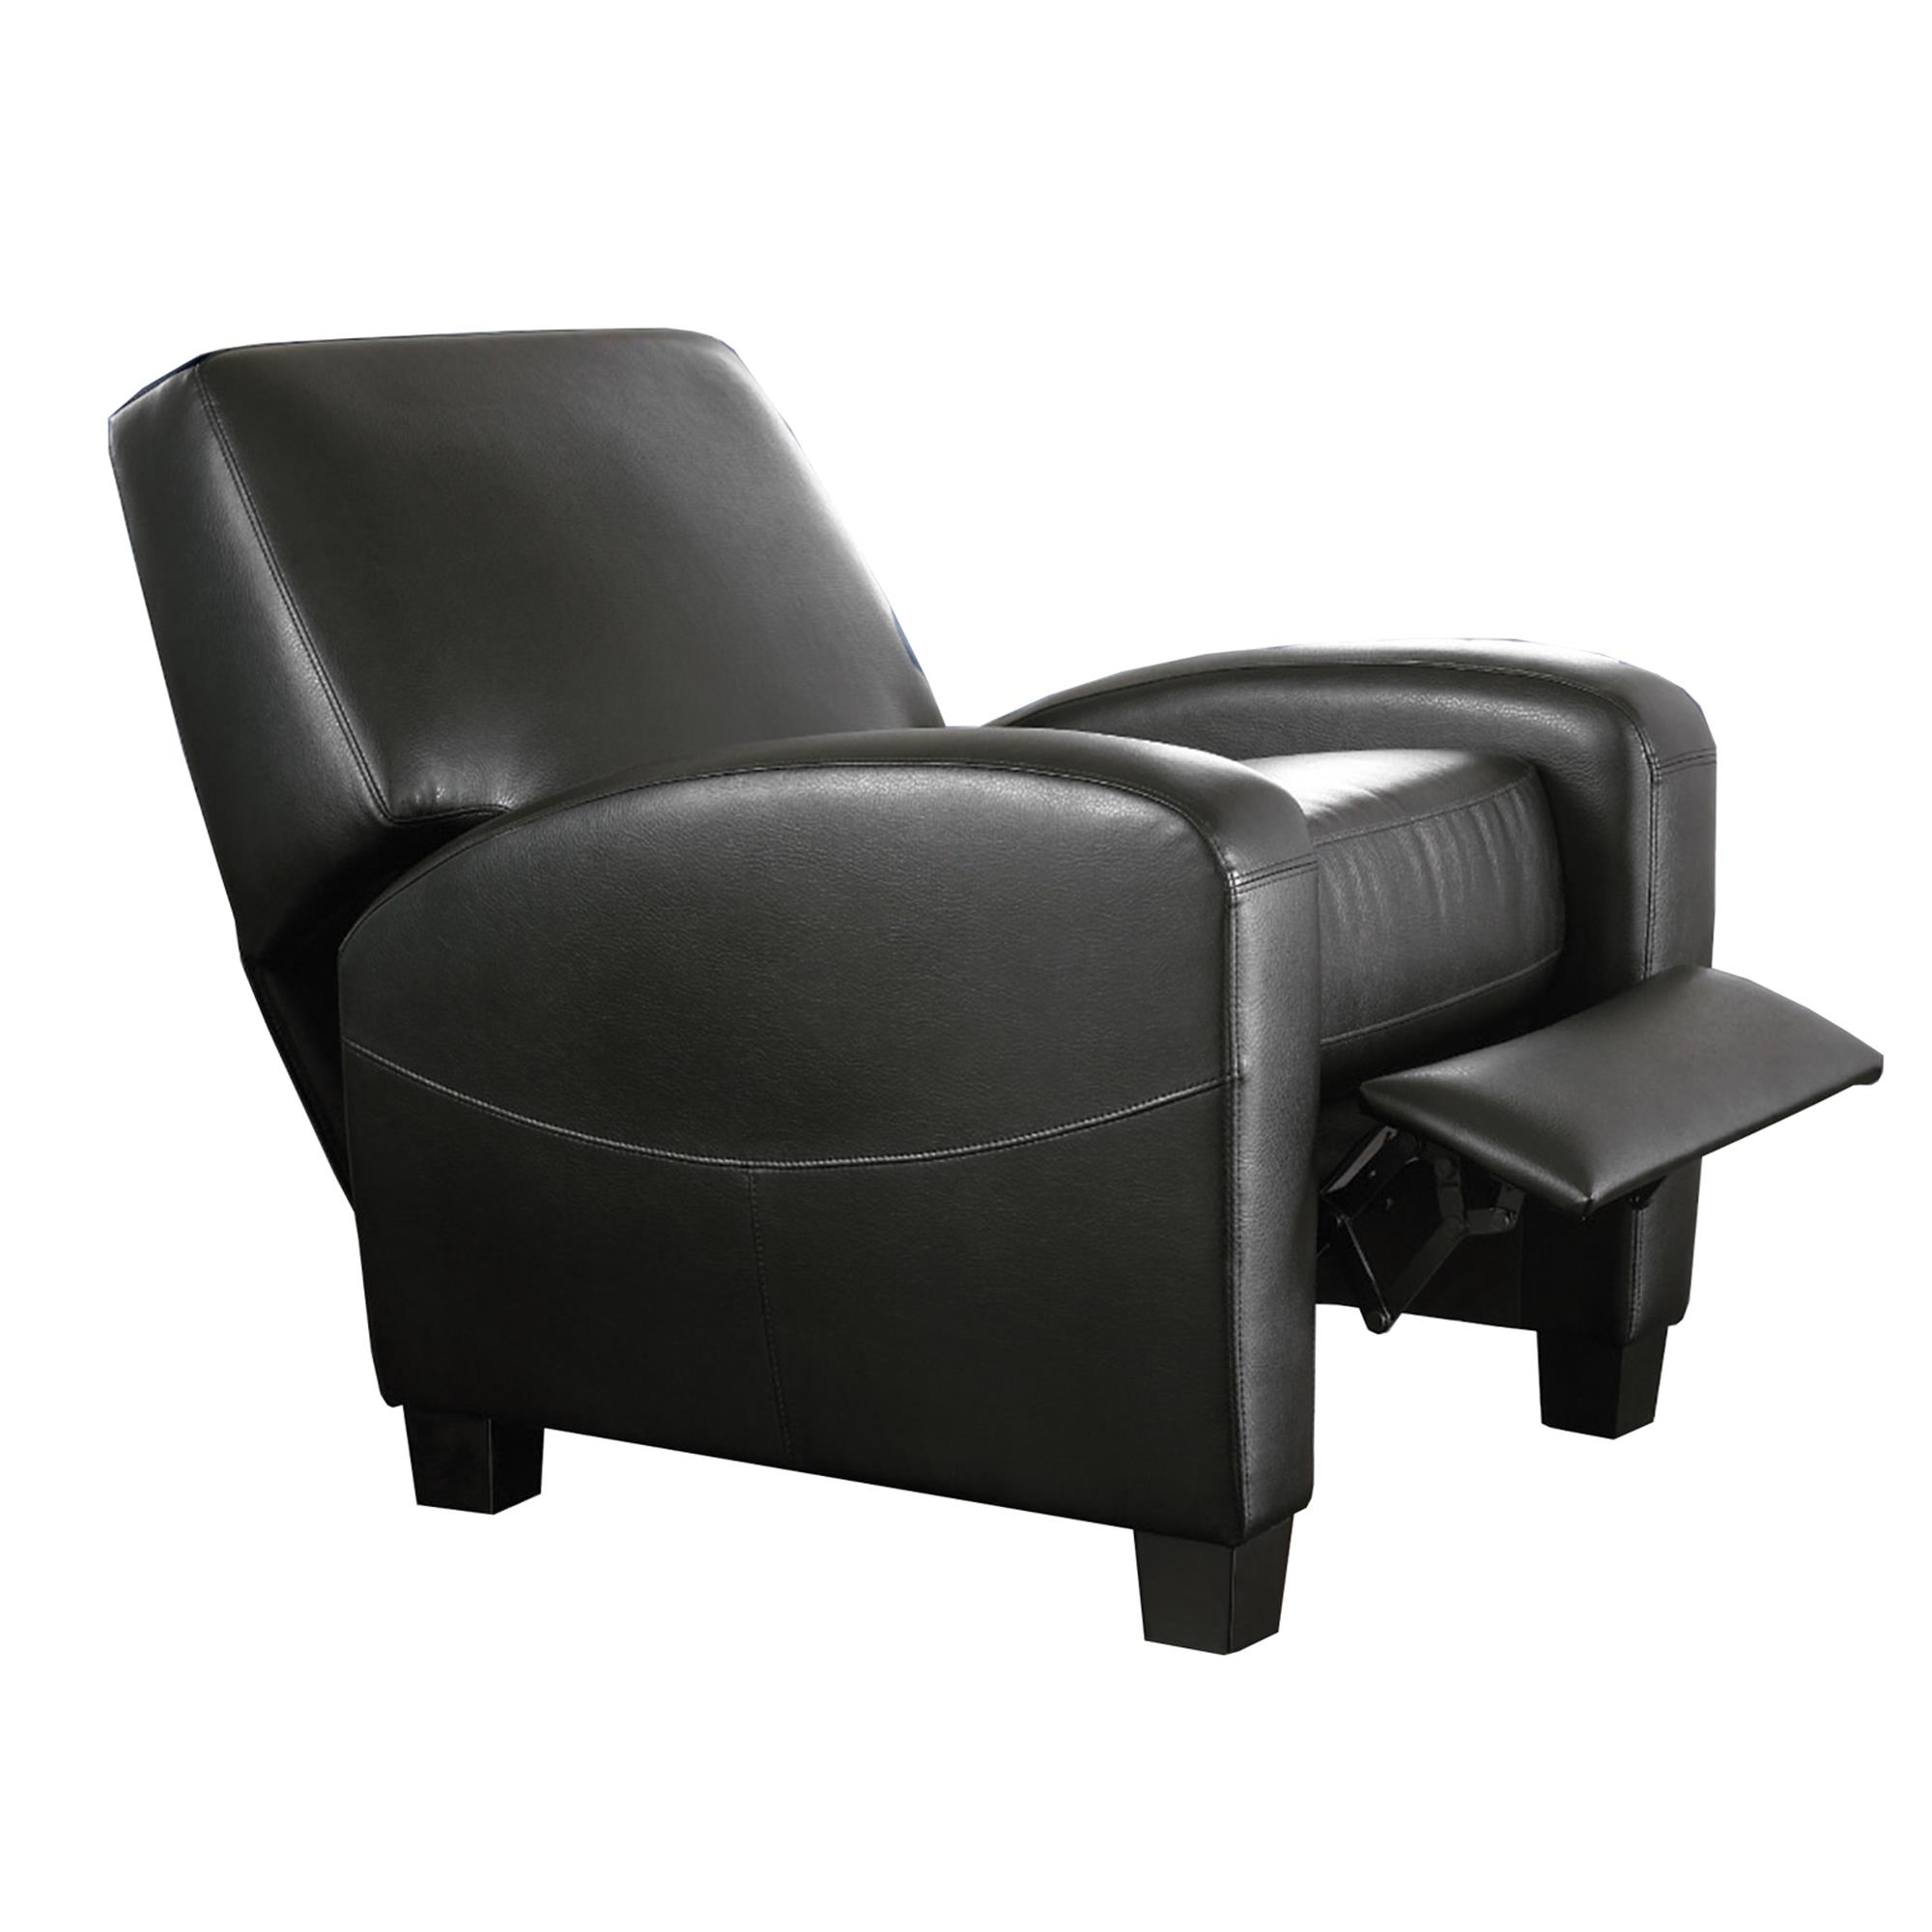 Mainstays Home Theater Recliner, Multiple Colors, (Black)